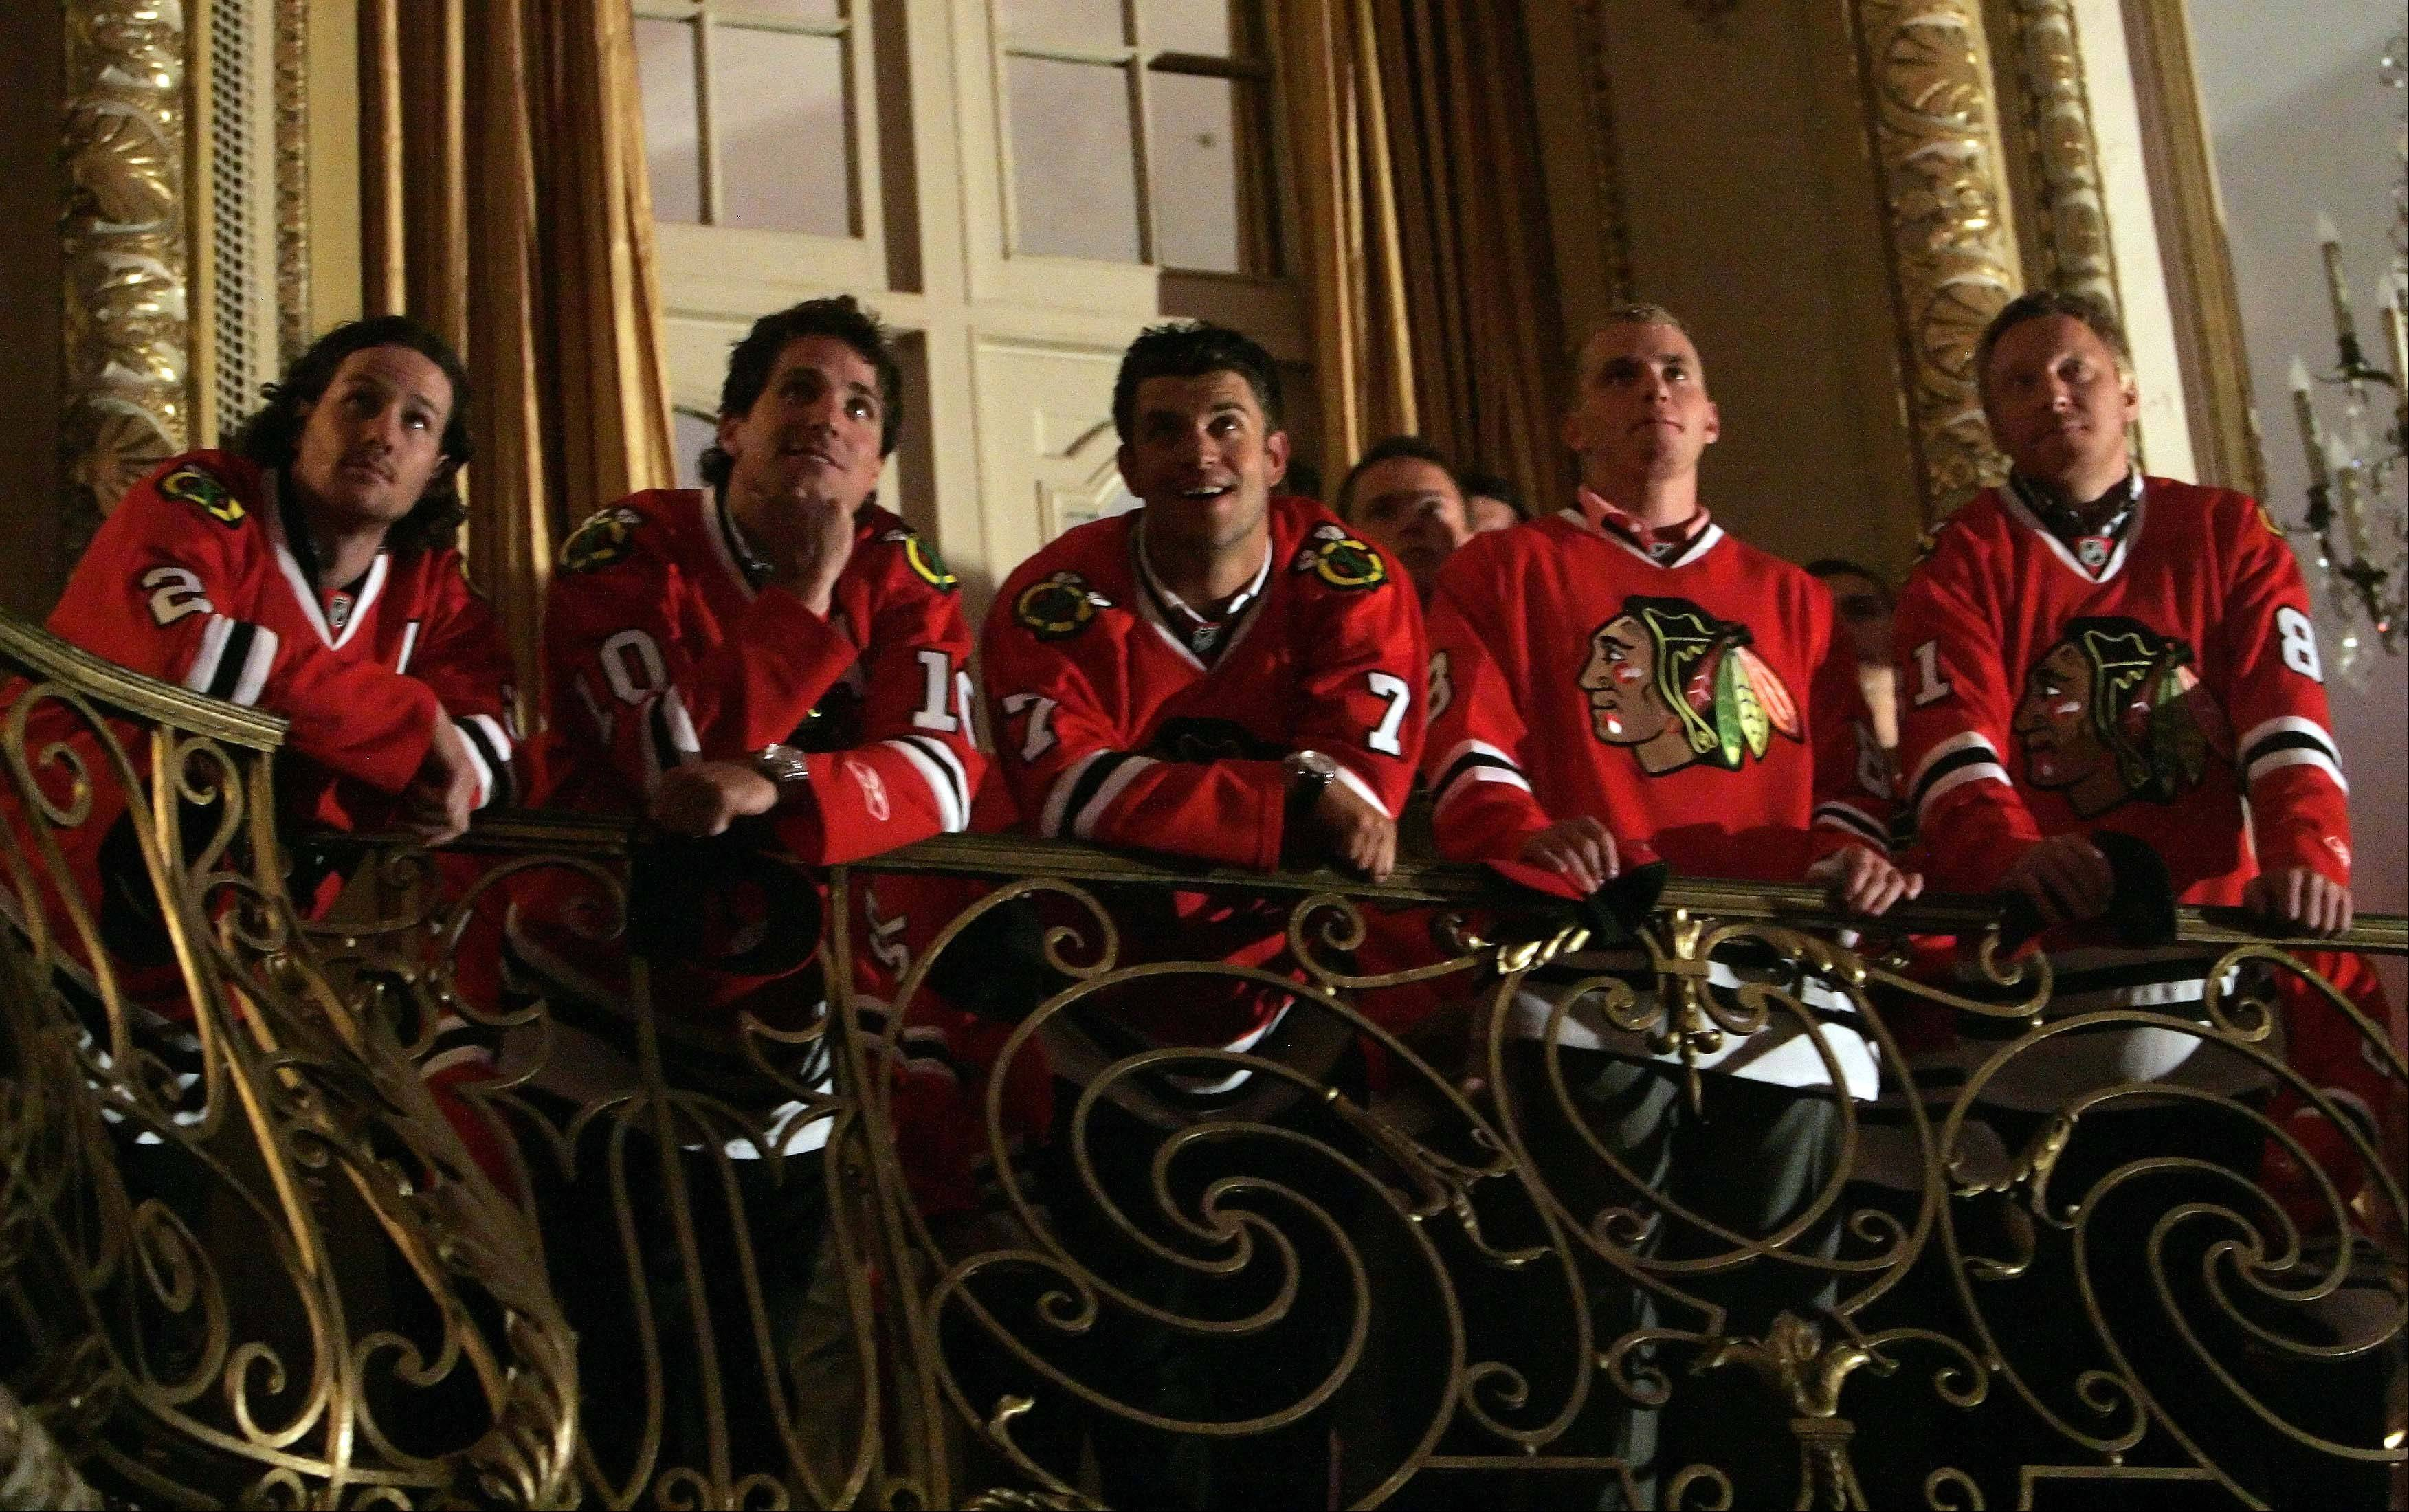 Duncan Keith, Patrick Sharp, Brent Seabrook , Patrick Kane, and Marian Hossa watch a video during the opening ceremonies of the fourth annual Blackhawks Convention at the Hilton Chicago on Friday night.